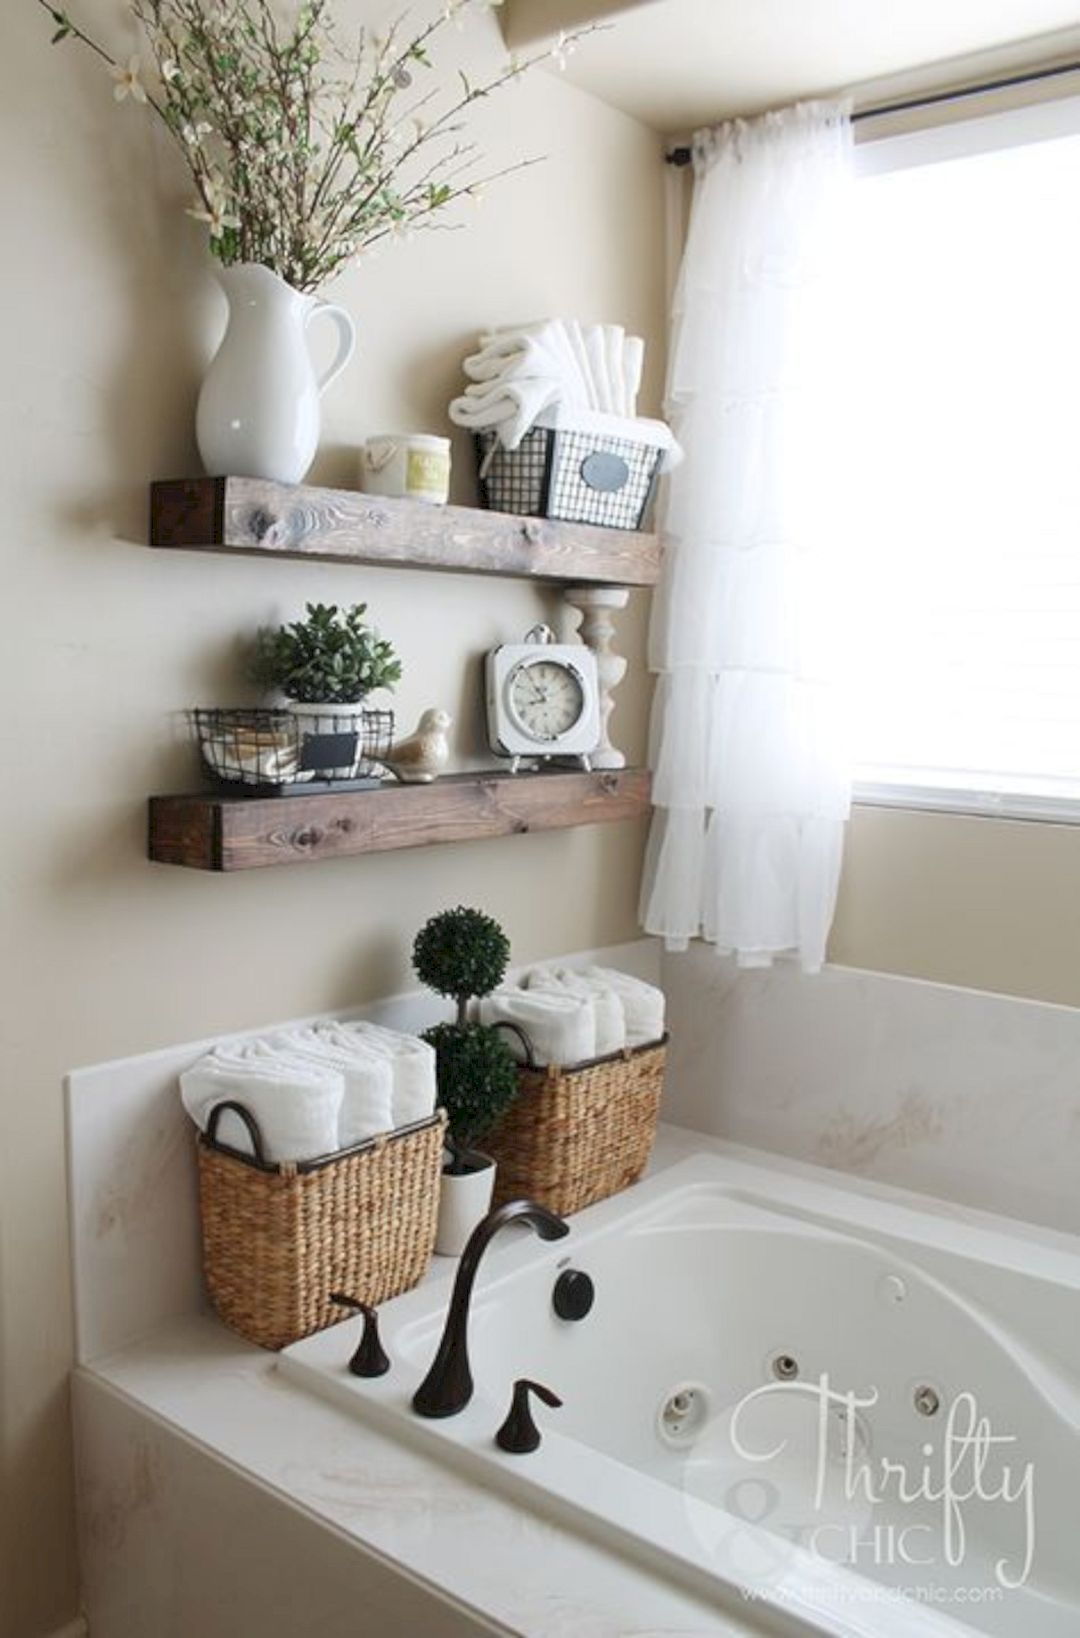 15 Bathroom Decorating Ideas You Can Have At Home Gorgeous